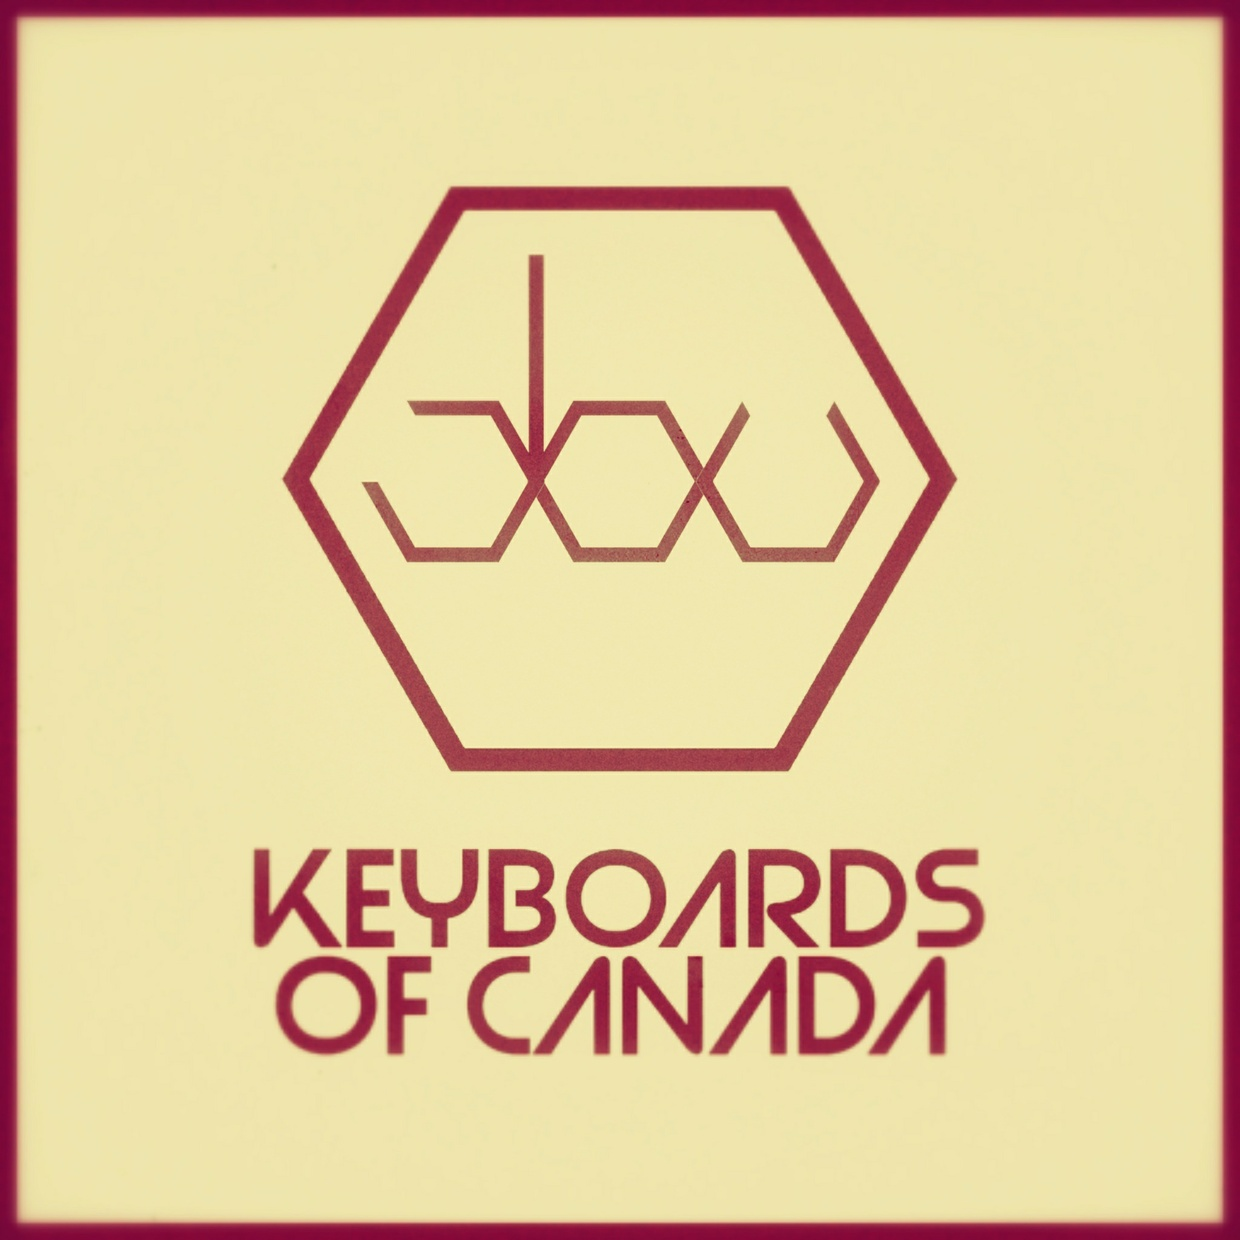 Keyboards of Canada